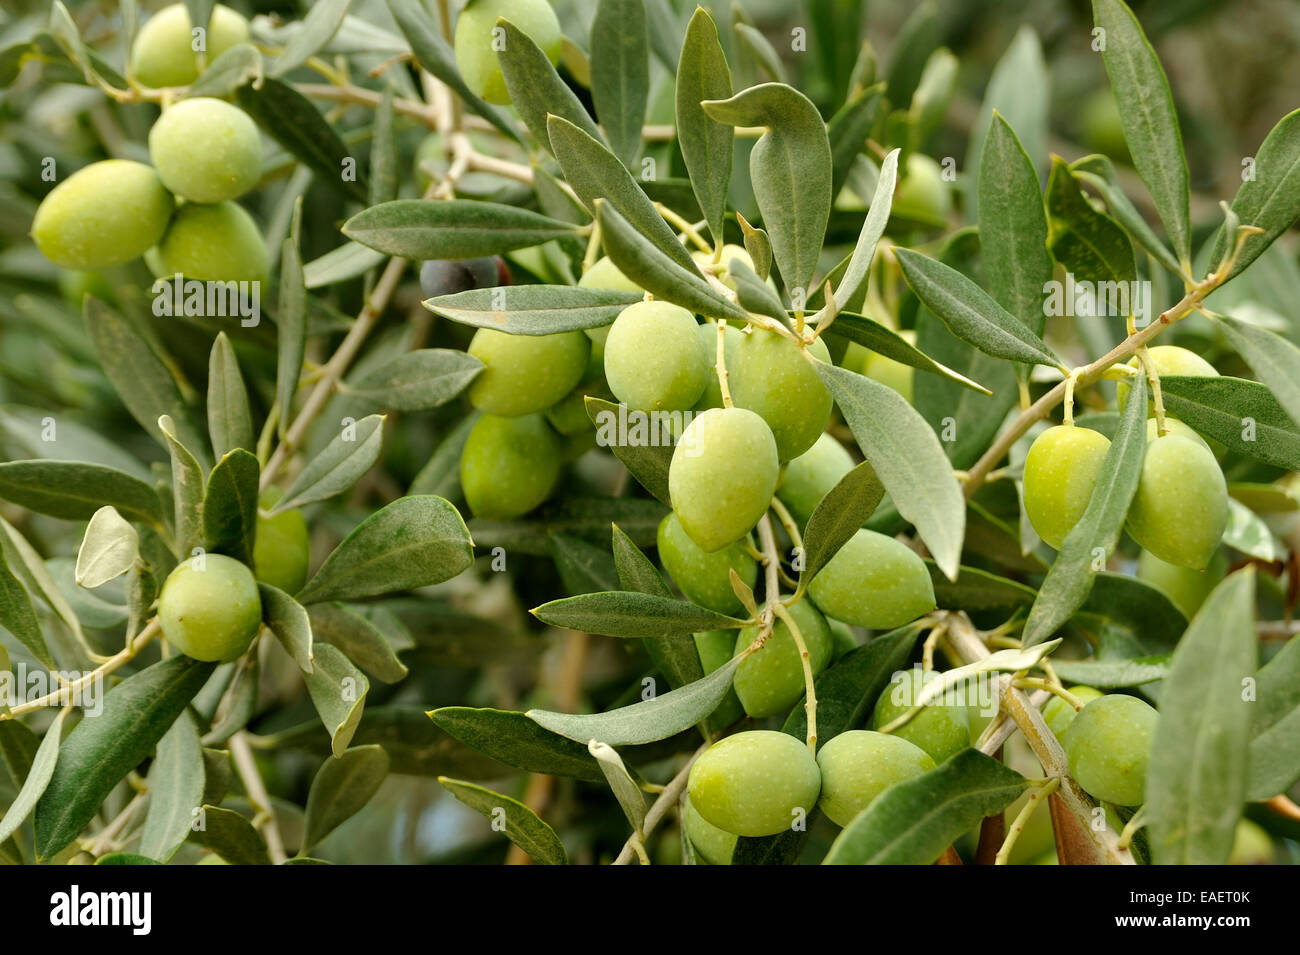 GREEN OLIVES GROWING ON AN OLIVE TREE IN CYPRUS - Stock Image